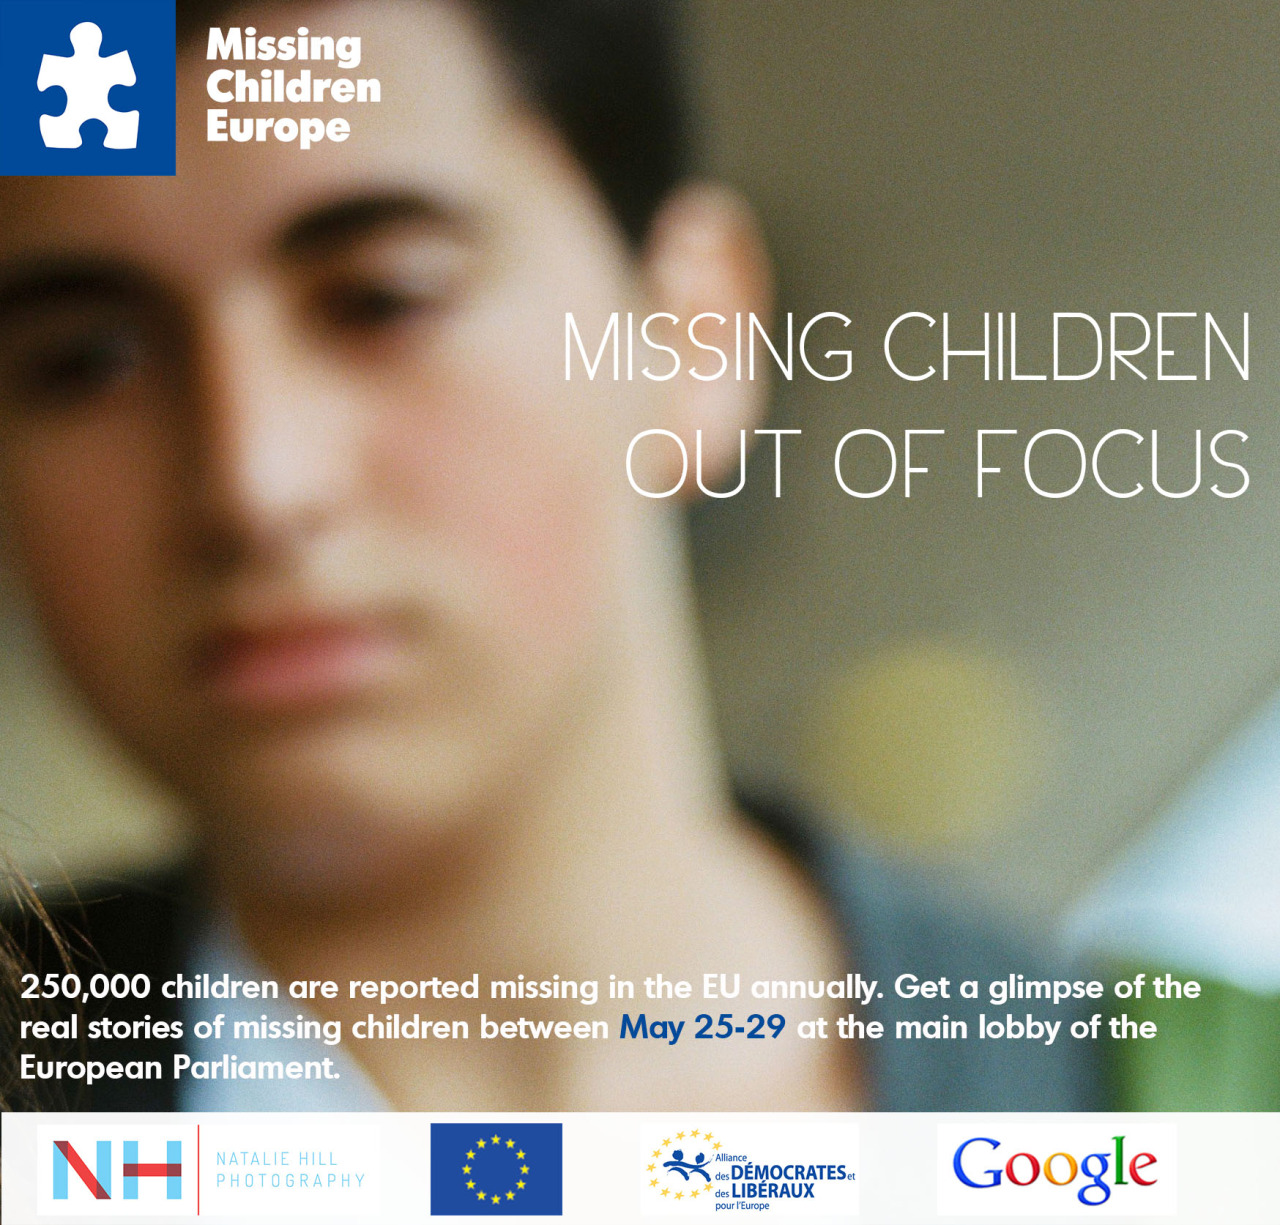 Next showing of my photography exhibition for Missing Children Europe- showing in the European Parliament in Brussels next week.